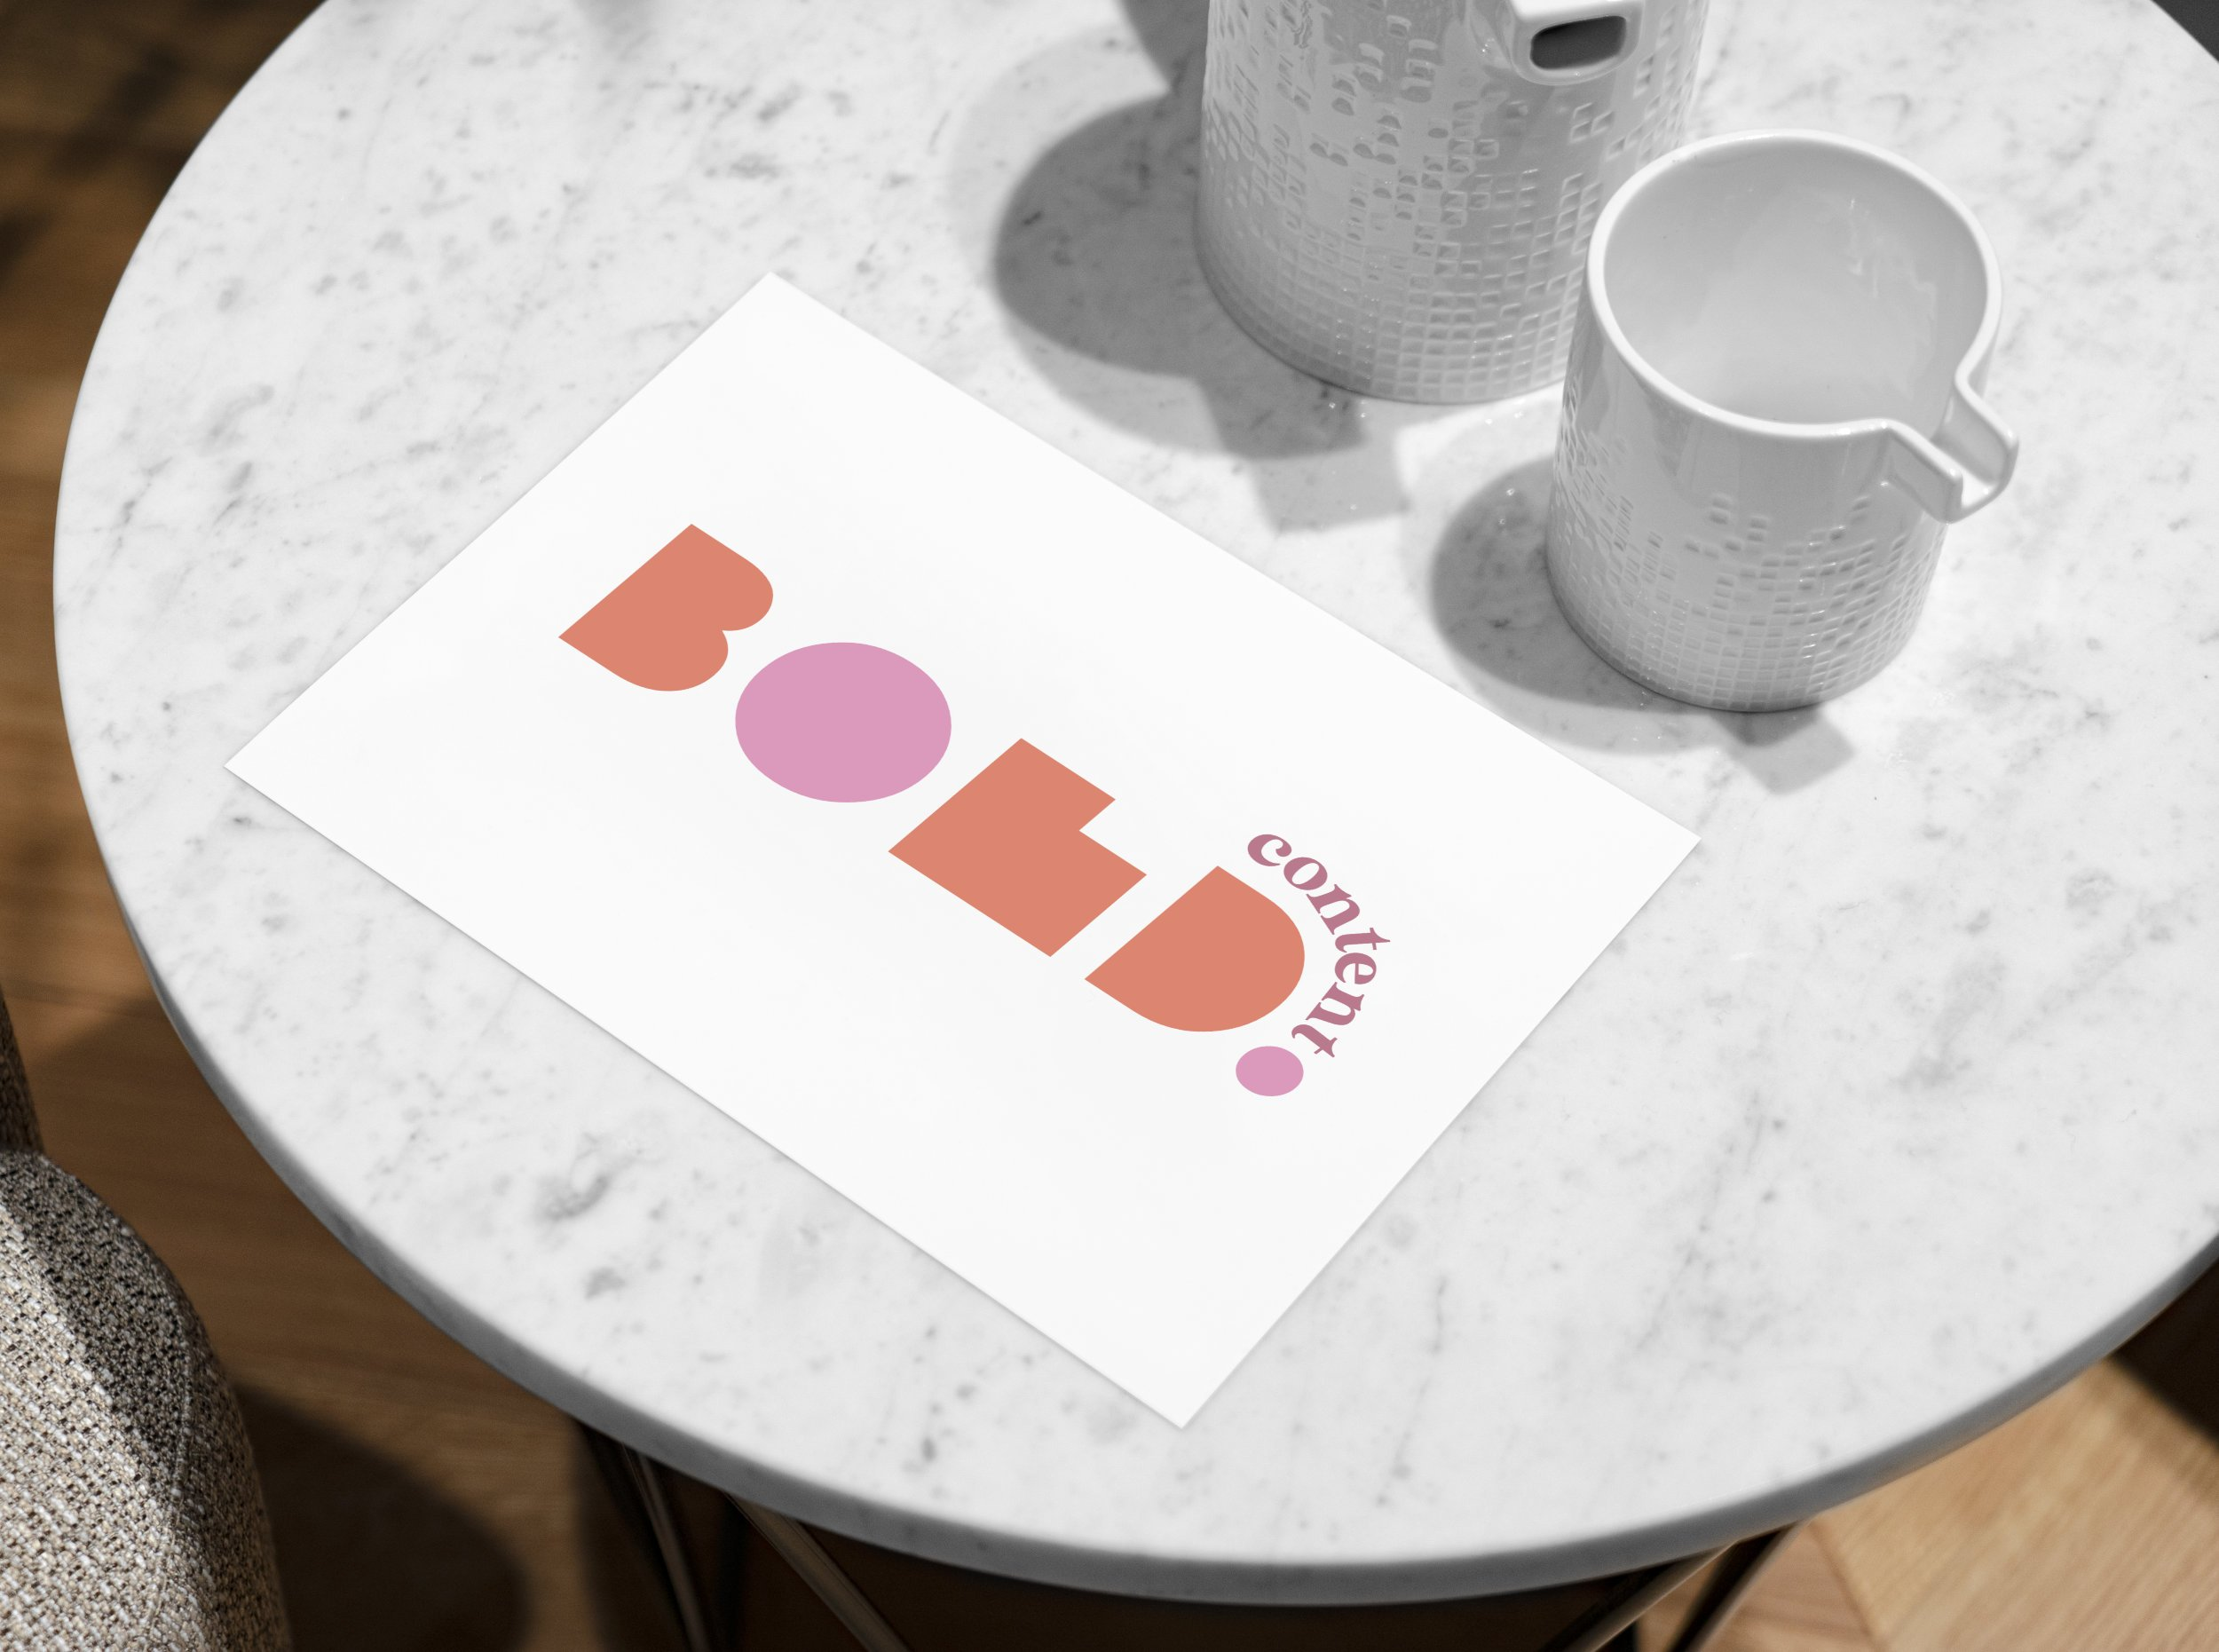 Bold Content logo in orange and pink on card on marble table